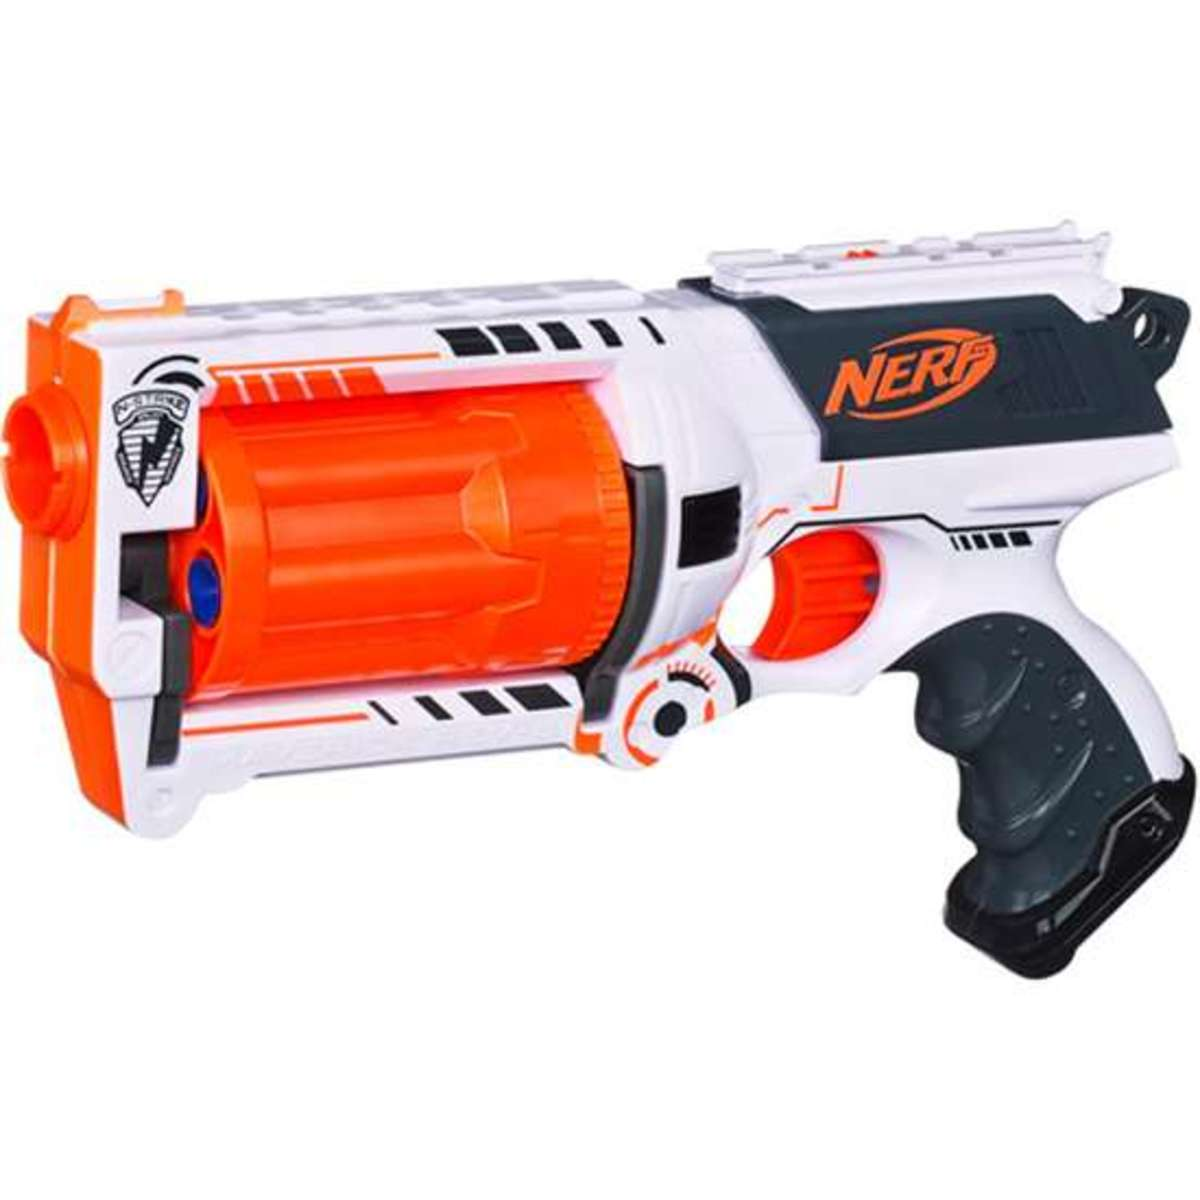 "The slide primer is the back portion of the gun where the ""Nerf"" logo is, right above the trigger. To operate this blaster you would need to grip onto this portion of the gun and pull back. You can see how this process would be much more difficult fo"